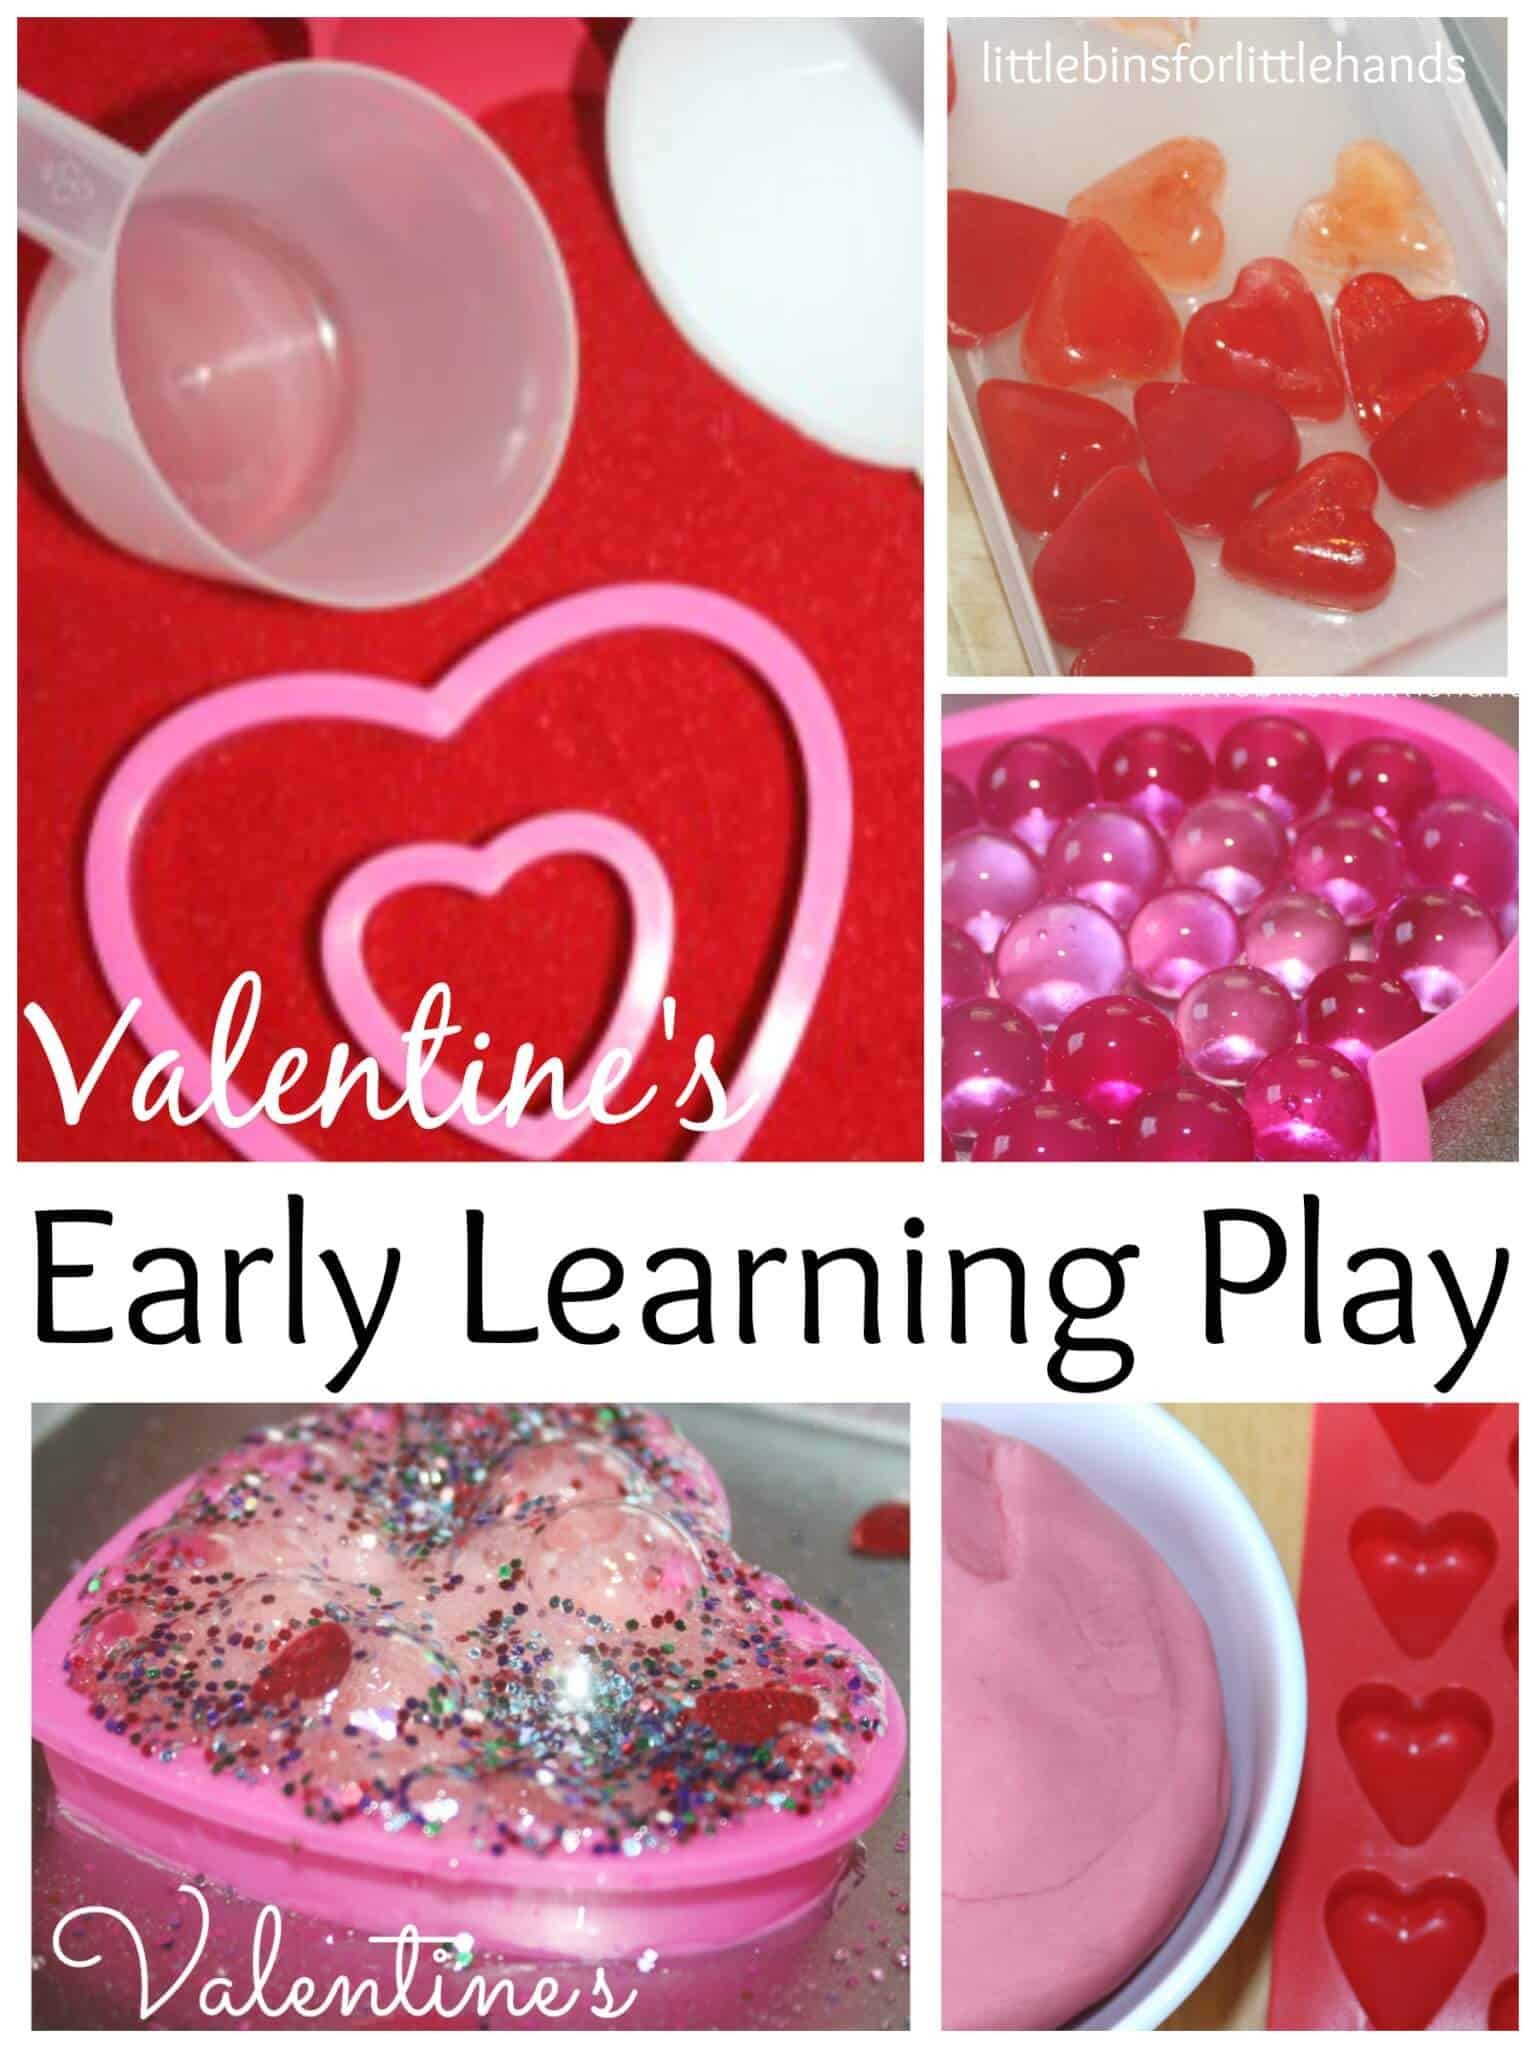 Valentines Preschool Activities for Playful Learning